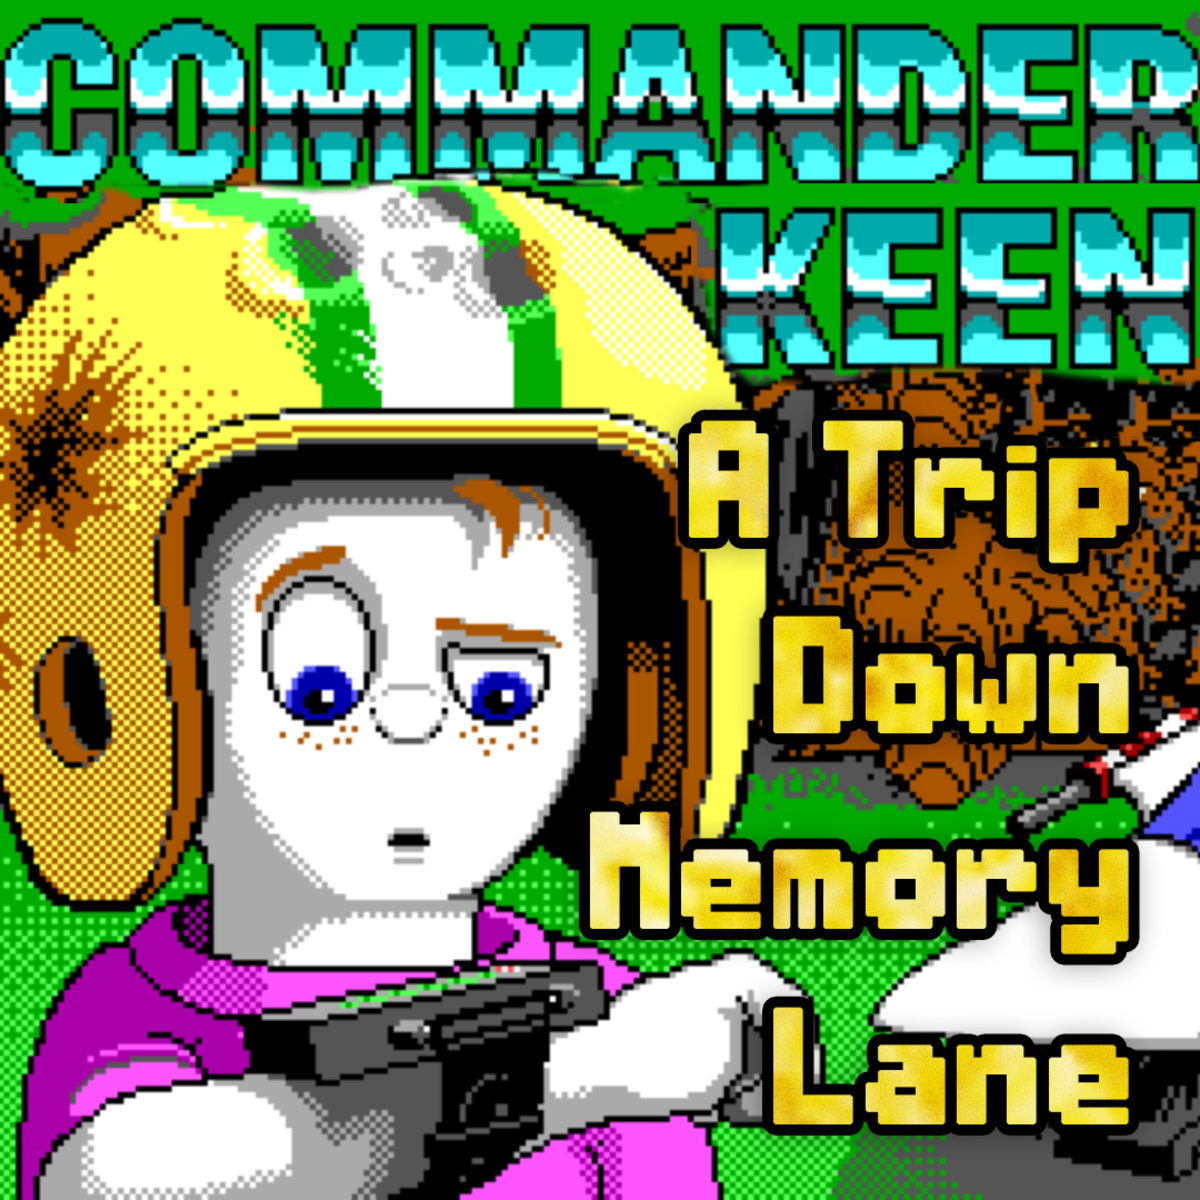 Commander Keen: A Trip Down Memory Lane